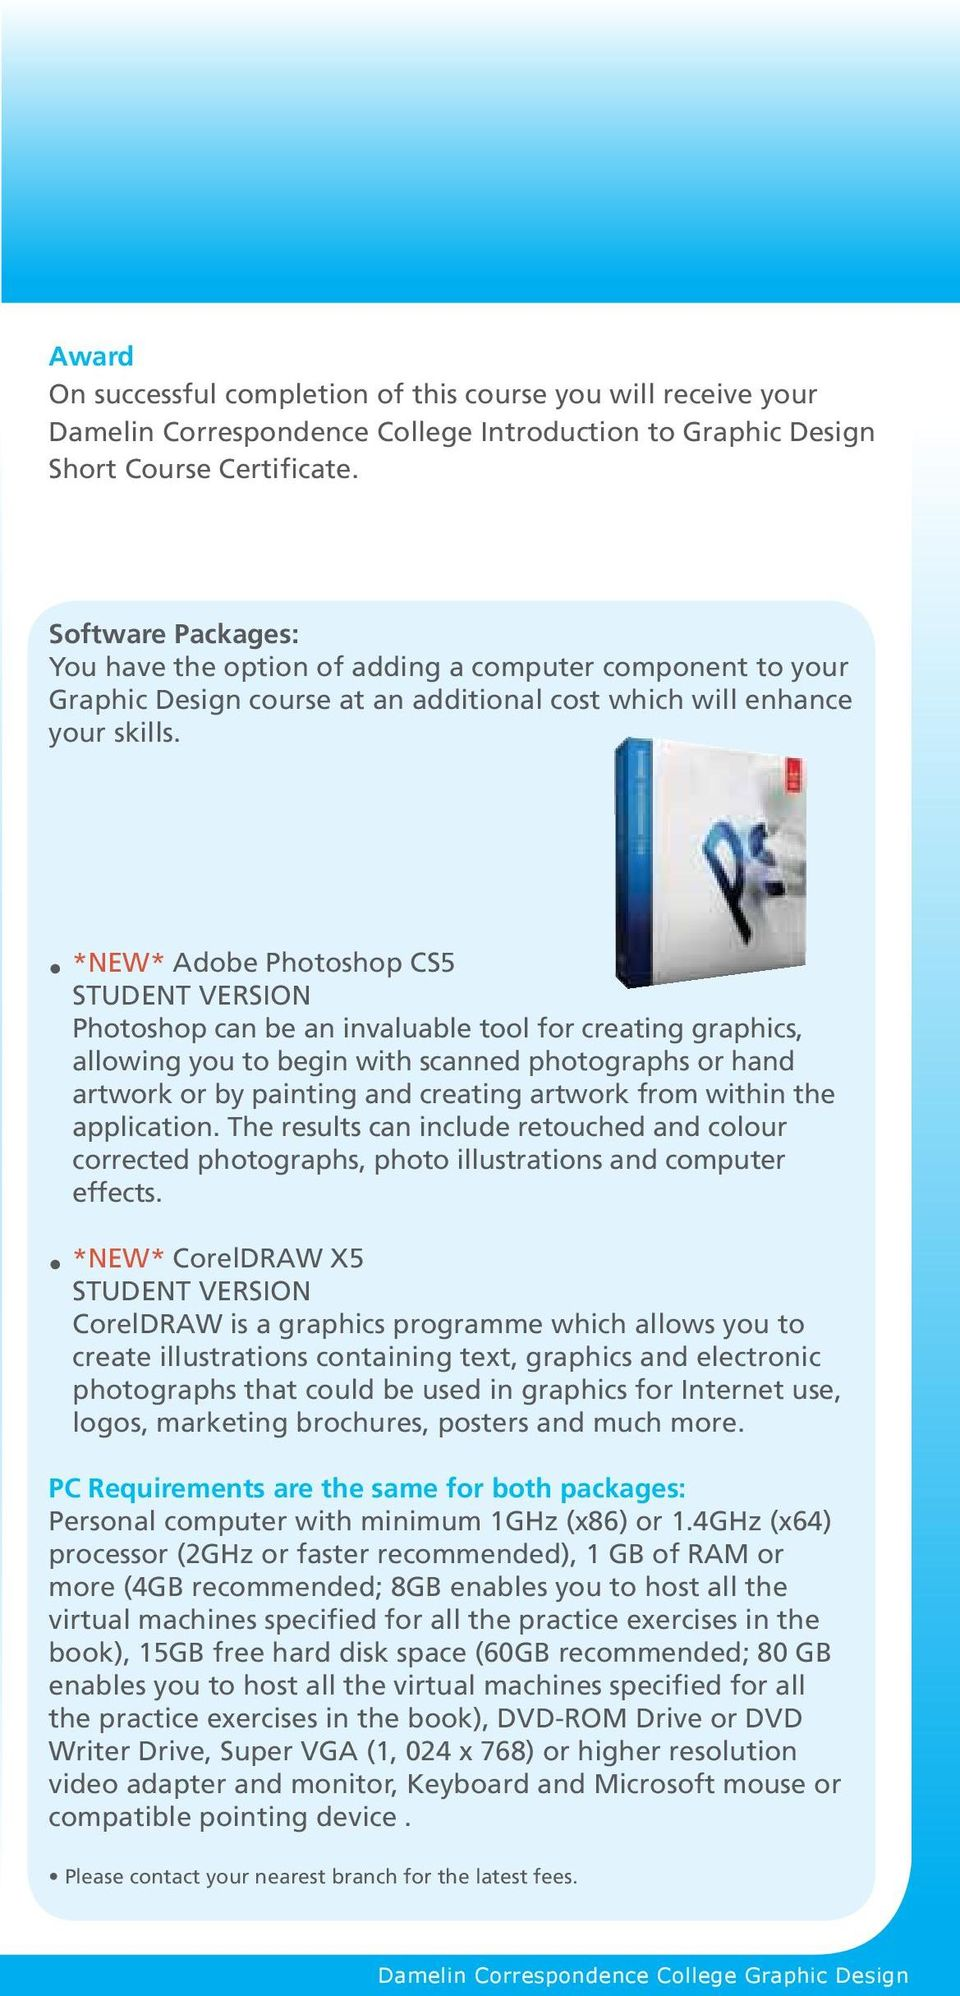 *NEW* Adobe Photoshop CS5 STUDENT VERSION Photoshop can be an invaluable tool for creating graphics, allowing you to begin with scanned photographs or hand artwork or by painting and creating artwork